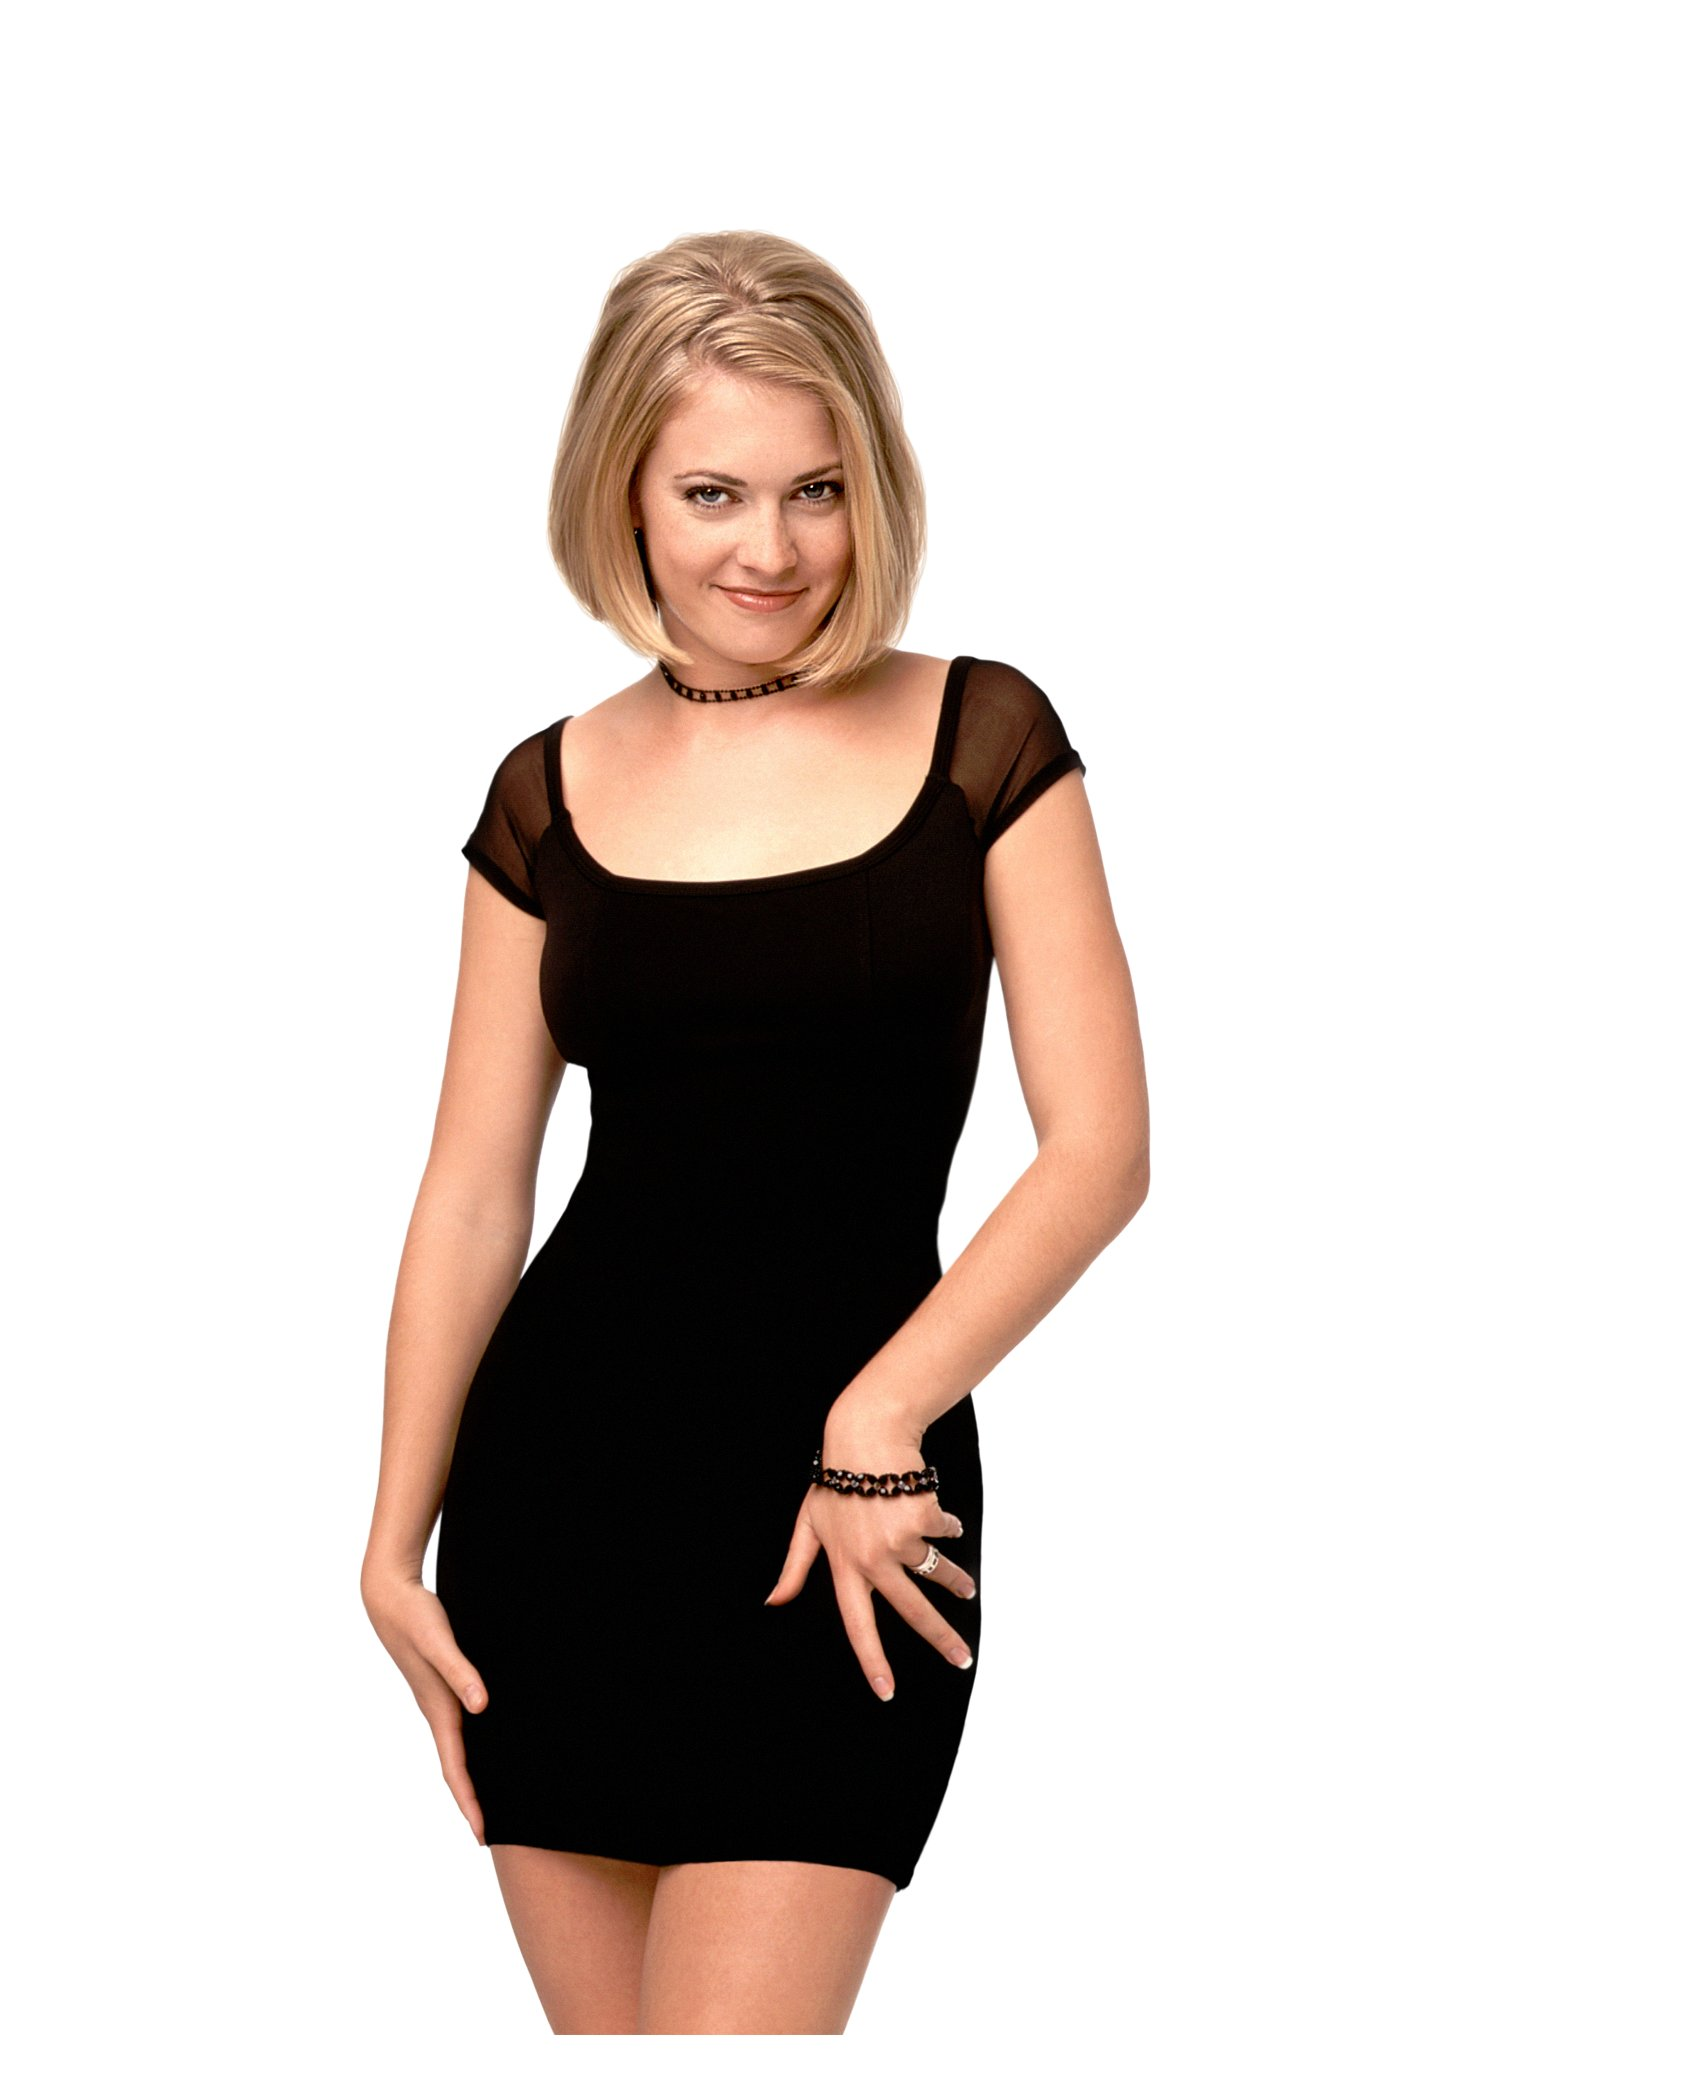 Teen melissa joan hart picture, nude sexy pinays